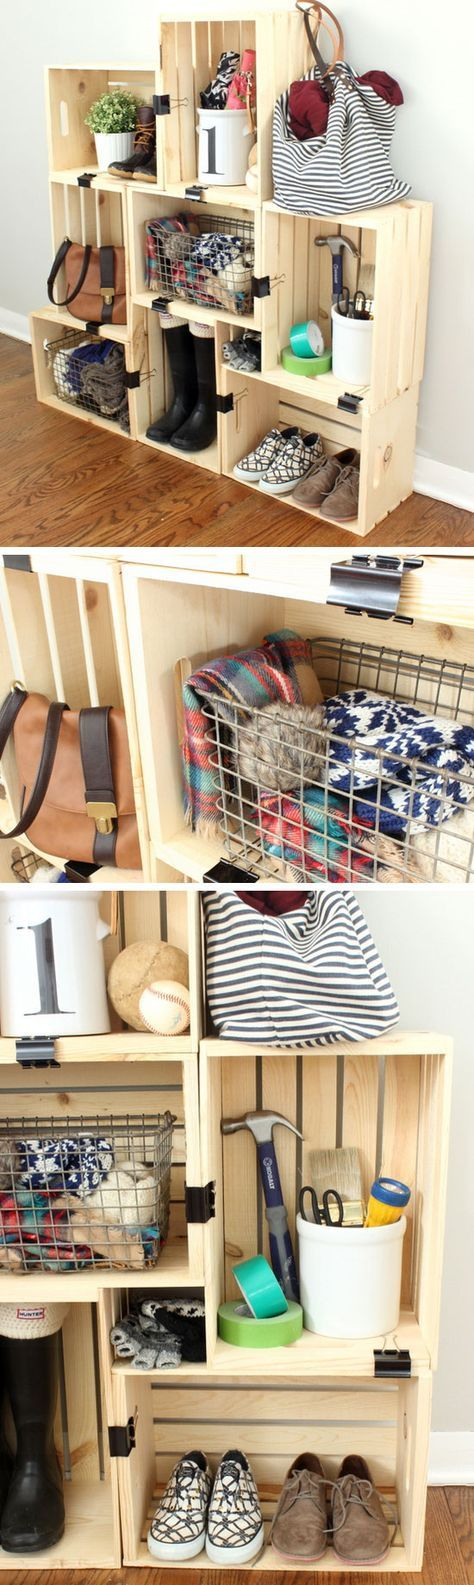 The 25+ best Small apartment storage ideas on Pinterest | Small ...